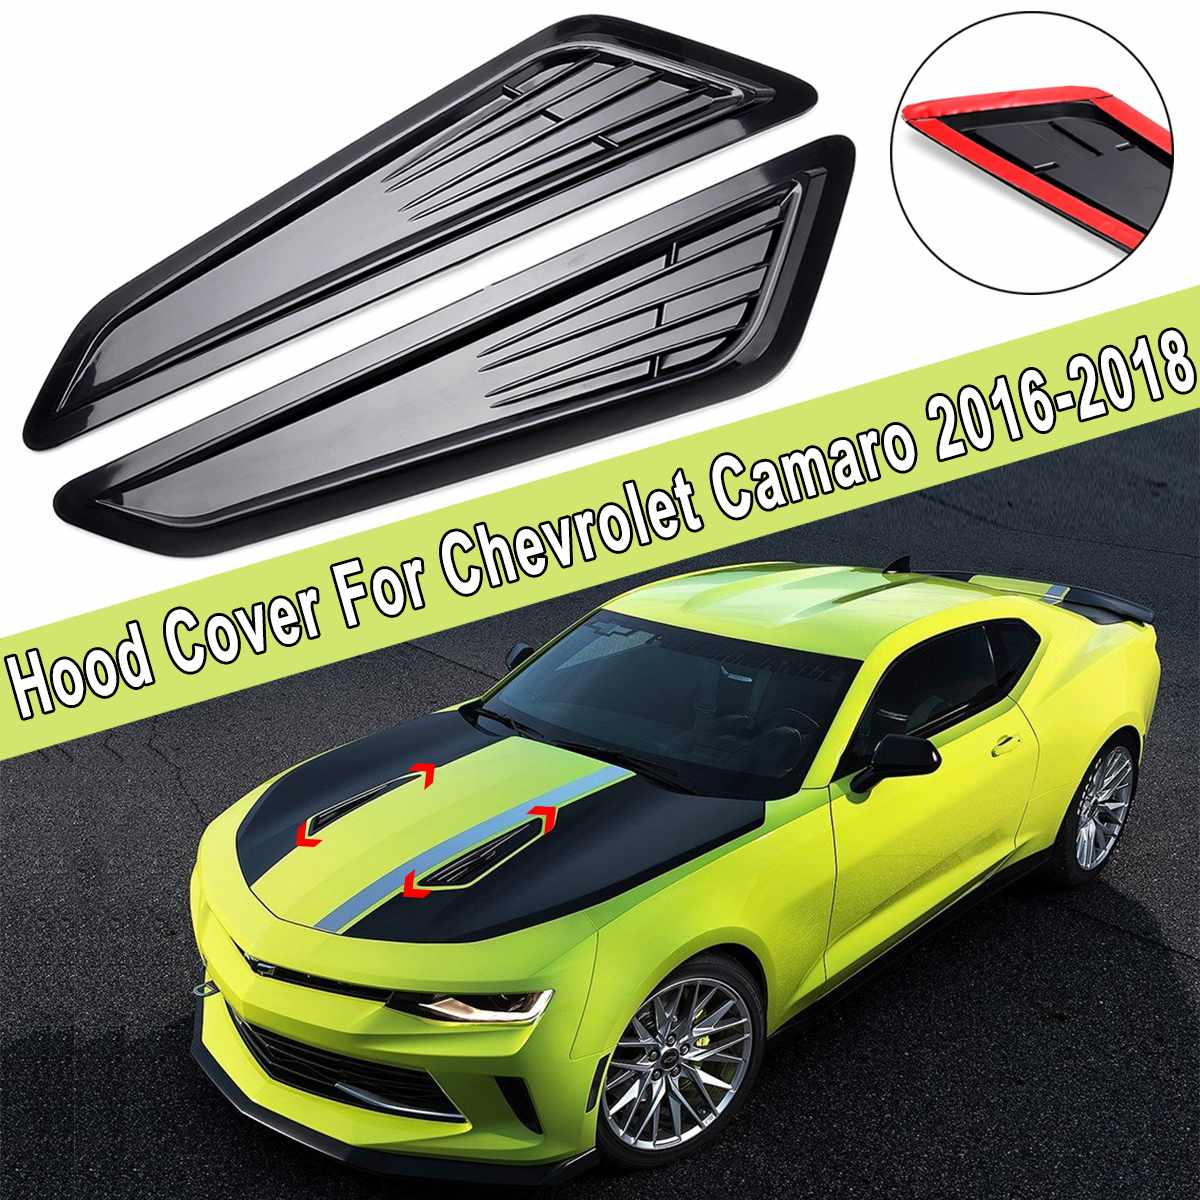 Interior Mouldings Trend Mark 2pcs/set Car Decor Abs Black Hood Air Flow Engine Outlet Decorative Vent Cover For Chevrolet For Camaro 2016-2018 Auto Decor Convenience Goods Interior Accessories